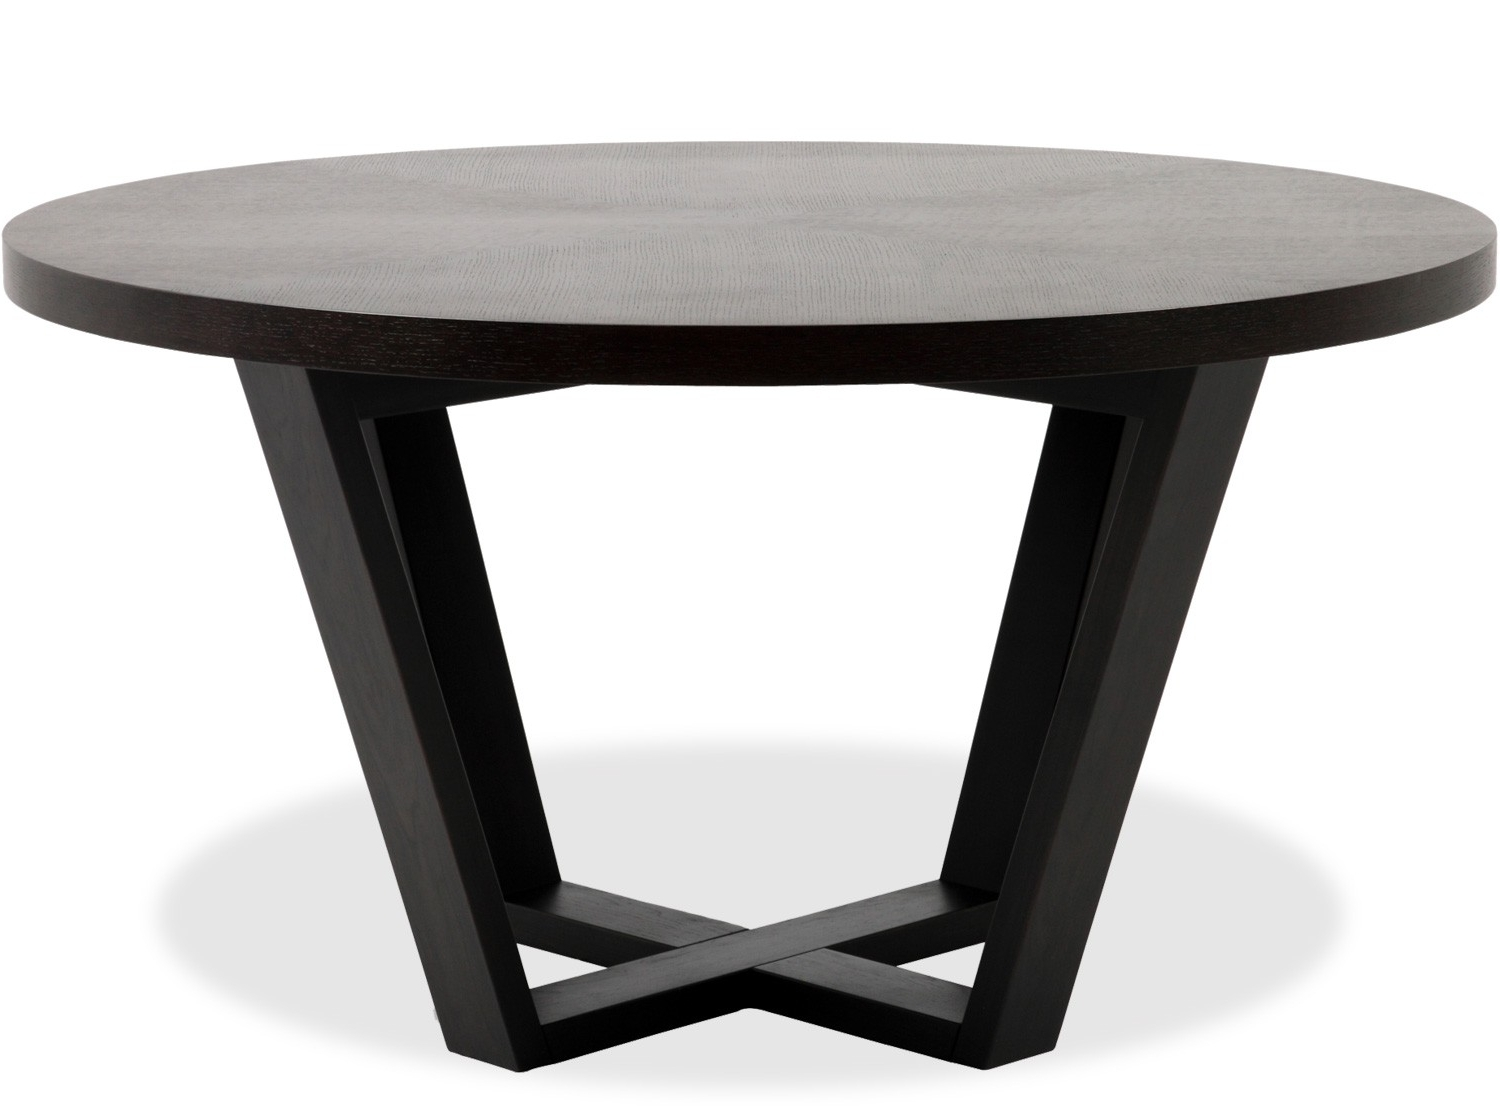 Dark Round Dining Tables Regarding Popular Dining Tables: Outstanding Round Black Dining Table Black Table (View 9 of 25)